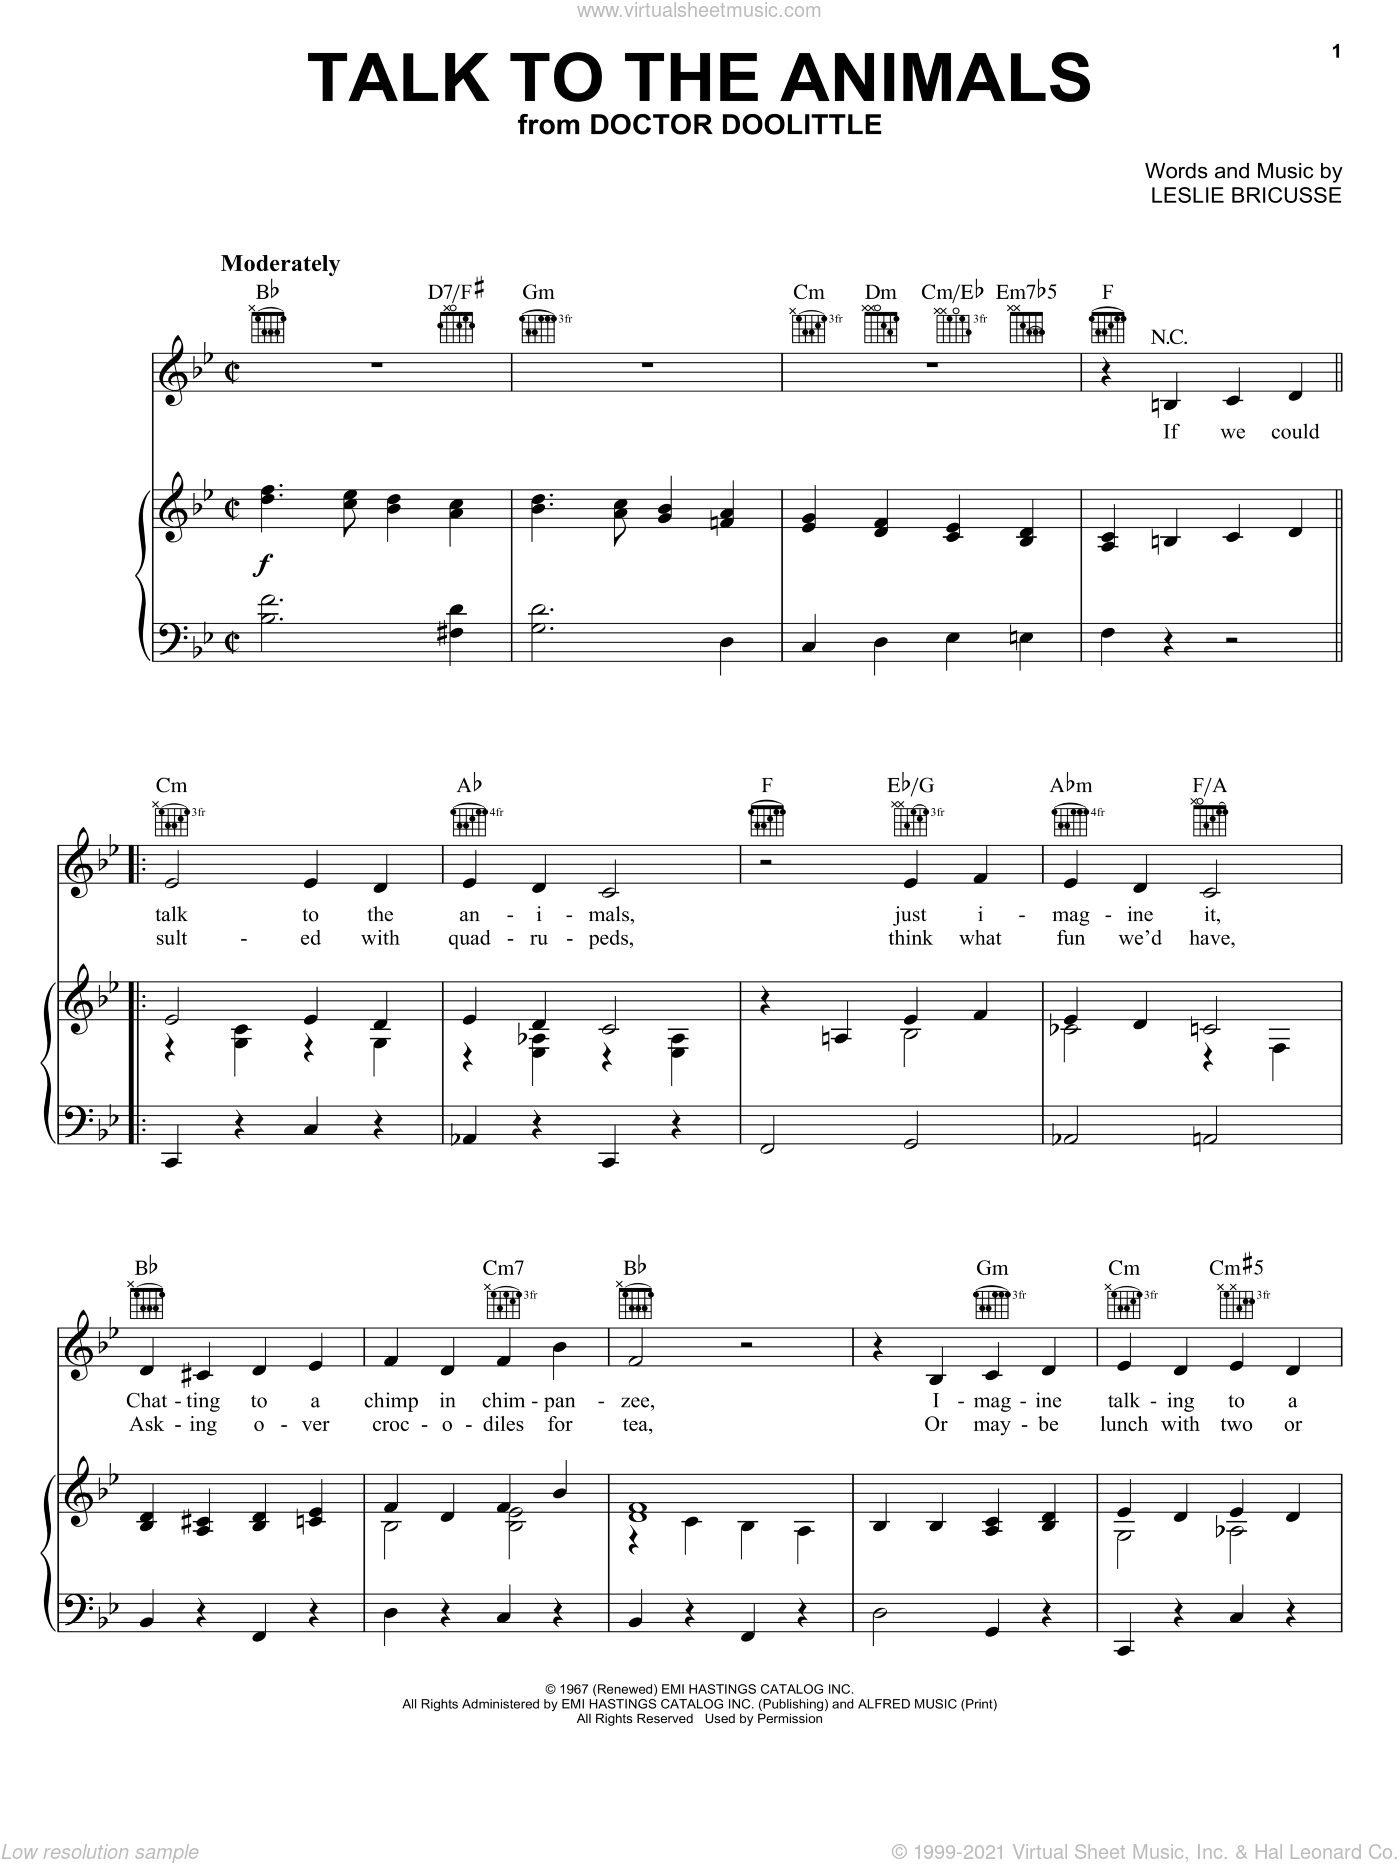 Talk To The Animals sheet music for voice, piano or guitar by Bobby Darin, Roger Williams, Sammy Davis, Jr. and Leslie Bricusse, intermediate skill level